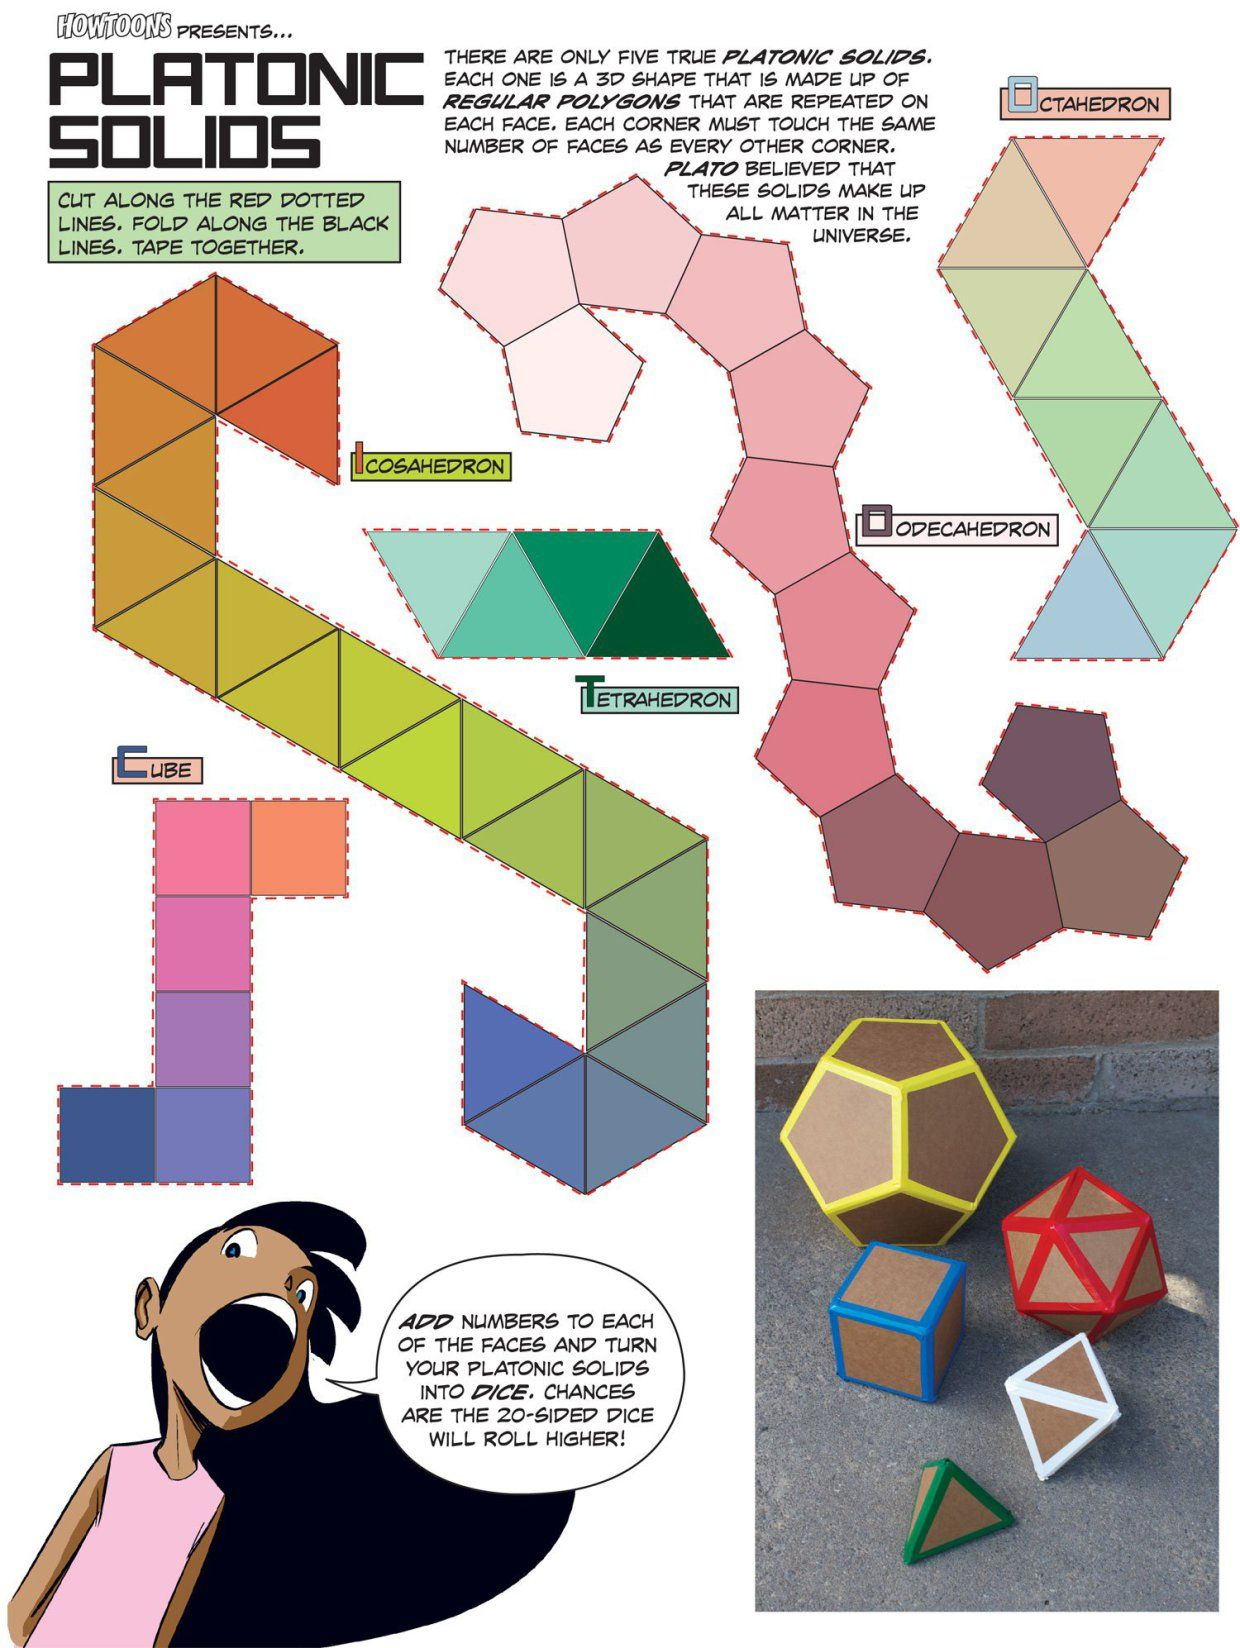 Howtoons Cut And Fold Platonic Mathematical Shapes Childs Play